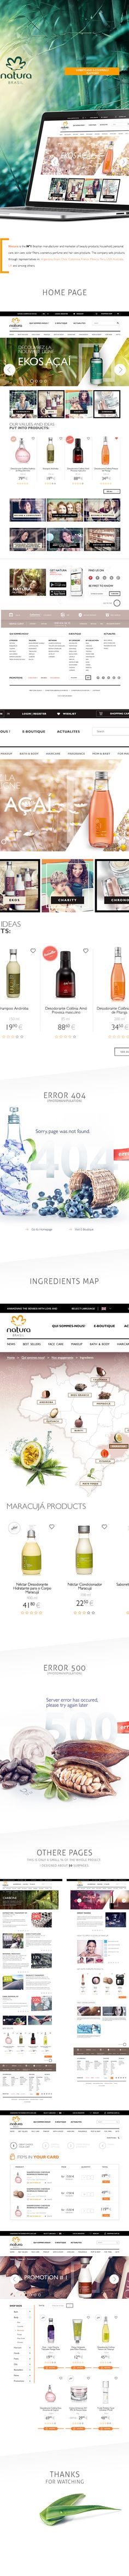 Natura Brasil website & shop.Natura is the N°1 Brazilian manufacturer and marketer of beauty products, household, personal care, skin care, solar filters, cosmetics, perfume and hair care products. The company sells products through representatives in…